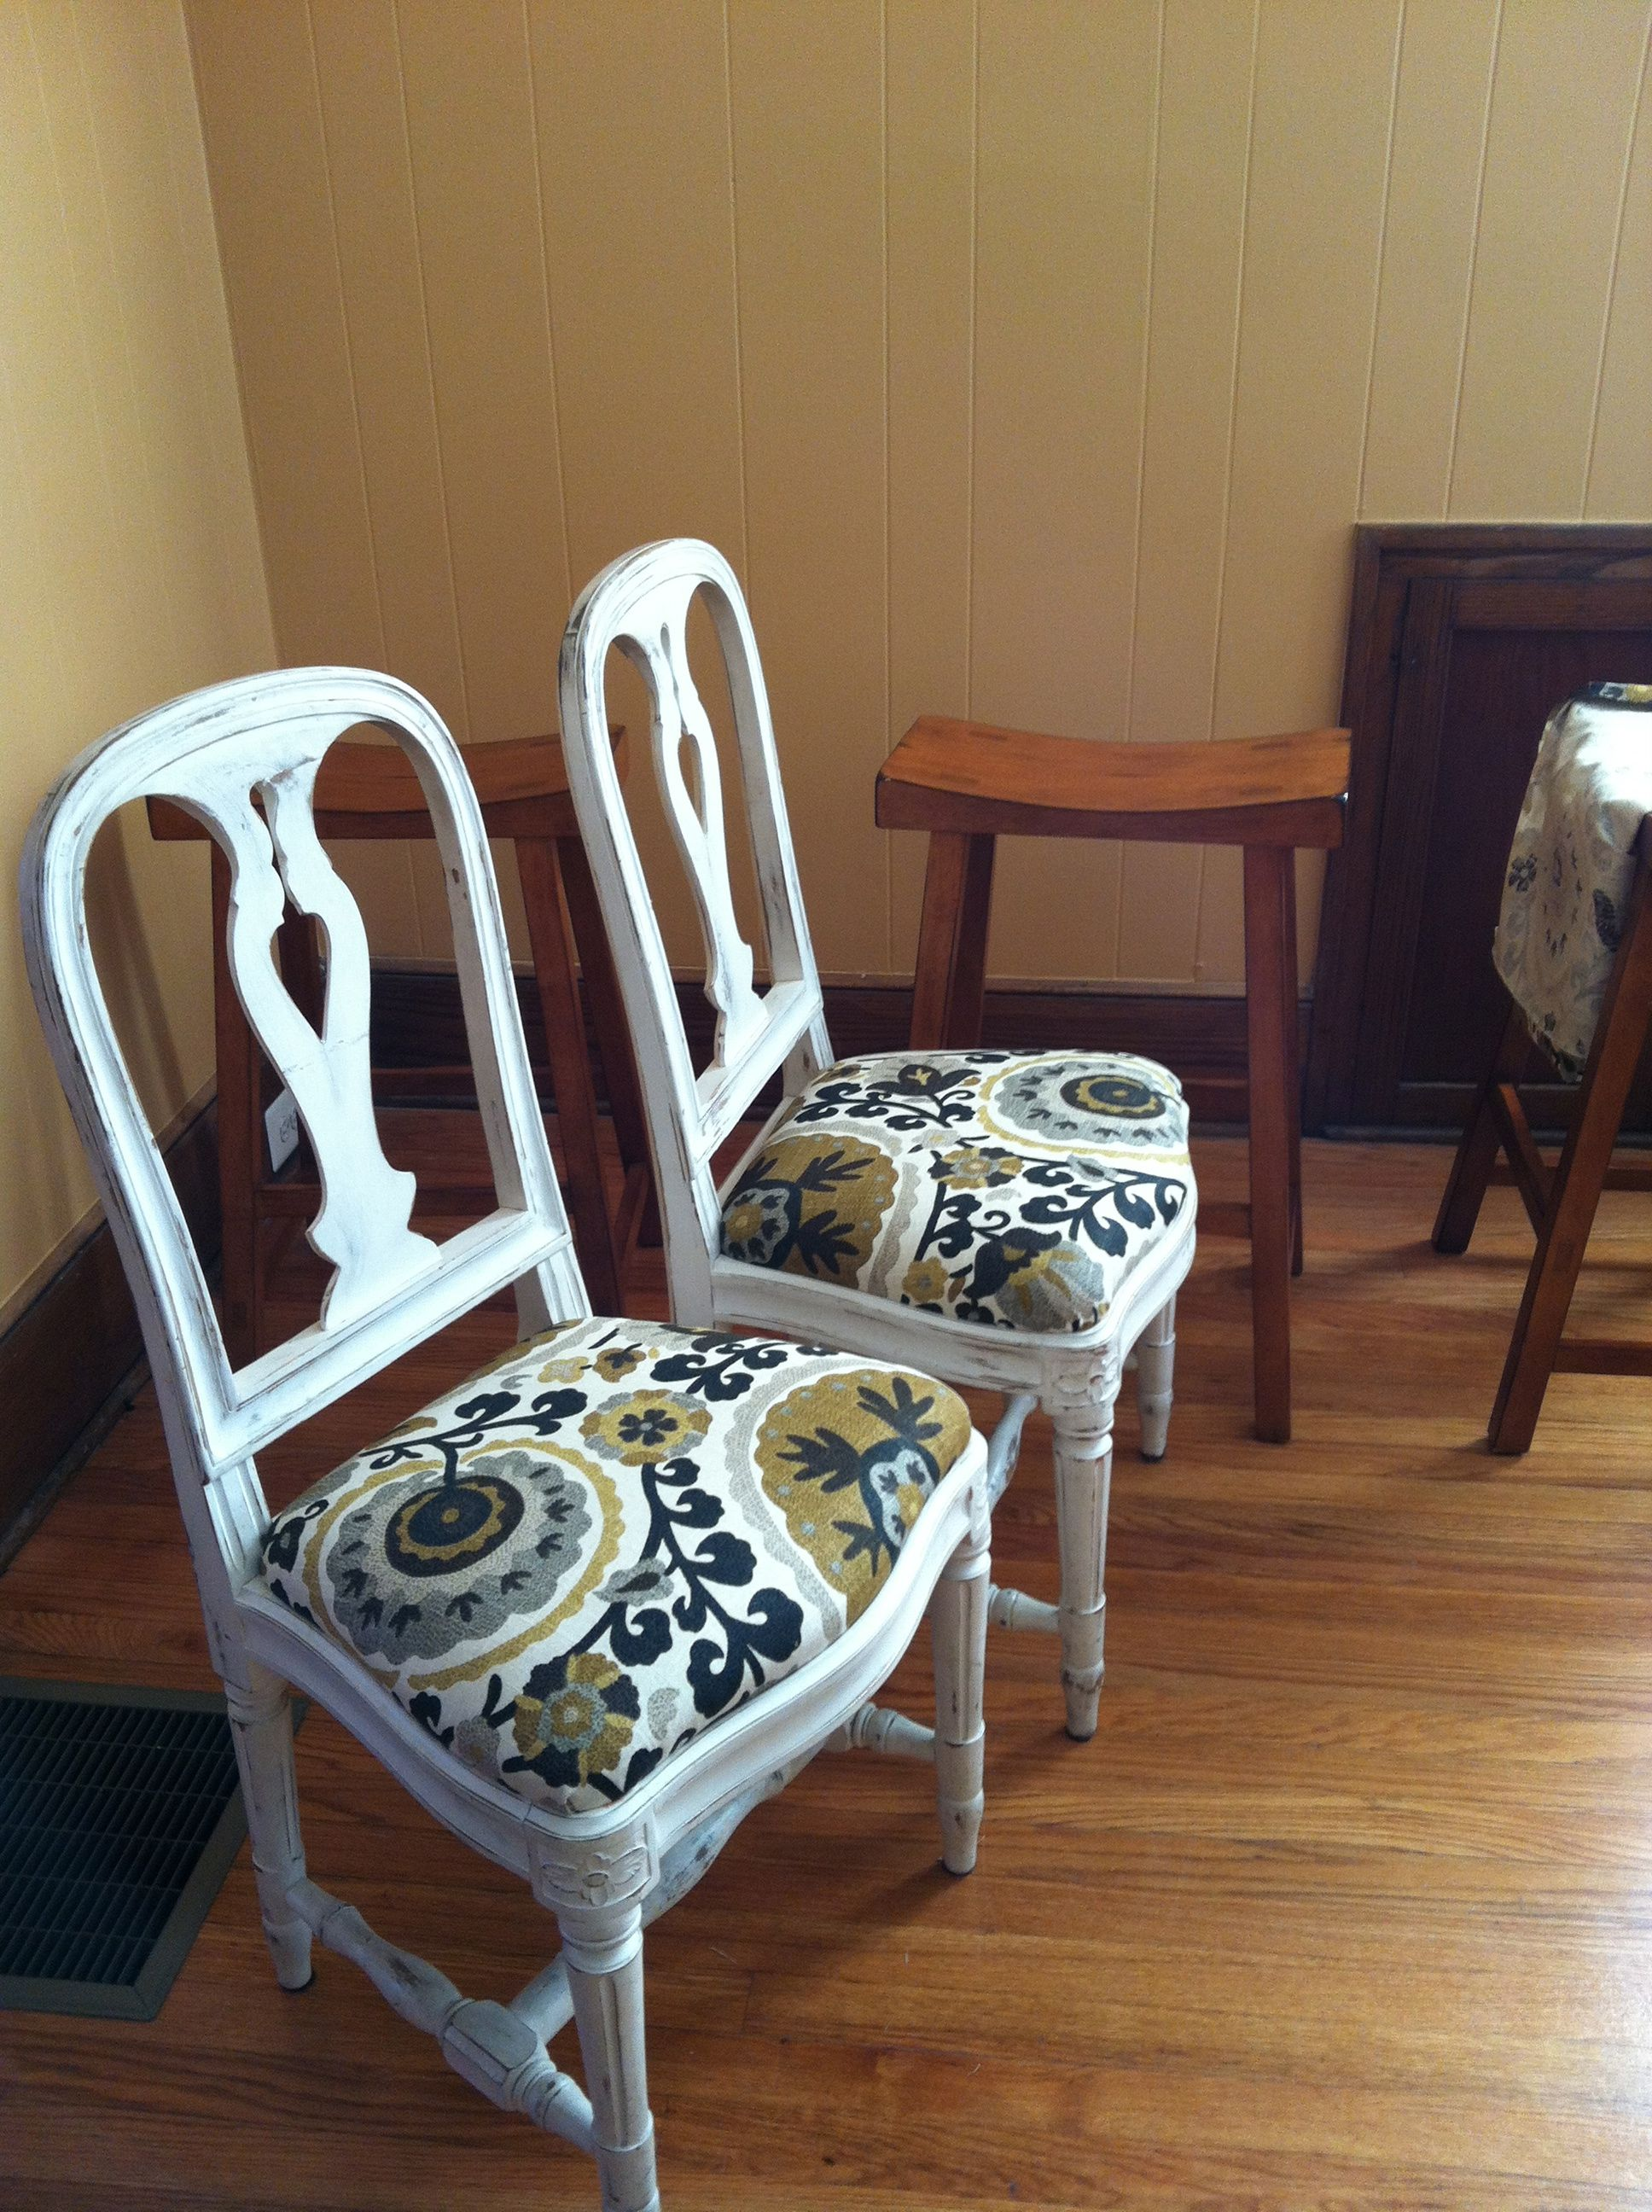 Ikea Gustavian Swedish Chairs circa 1995 that I recovered in a